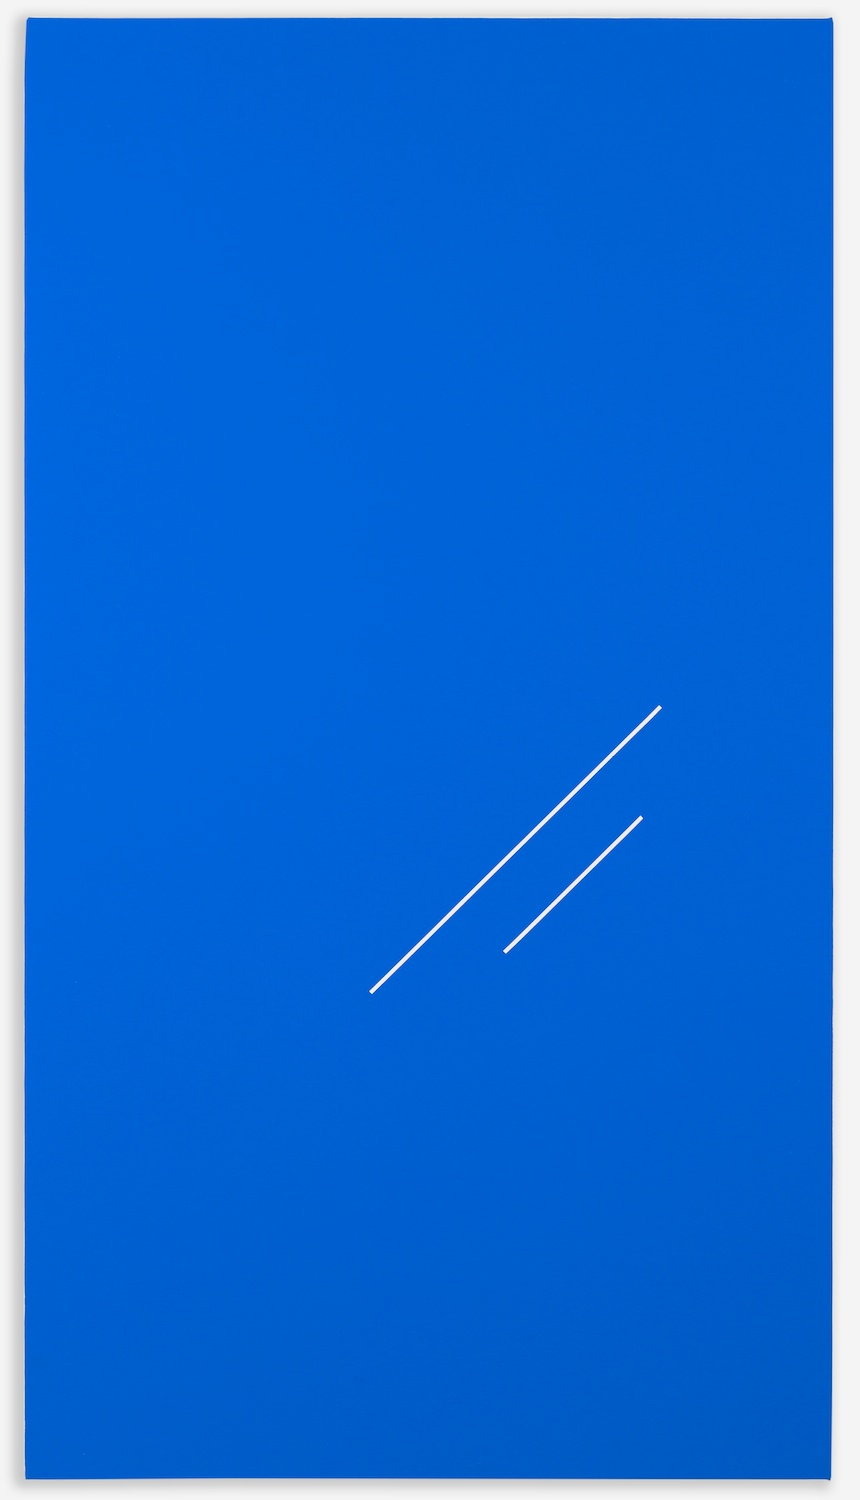 "Paul Cowan BCEAUSE THE SKY IS BULE  2013 Chroma-key blue paint on canvas 48"" x 26""  PC090"